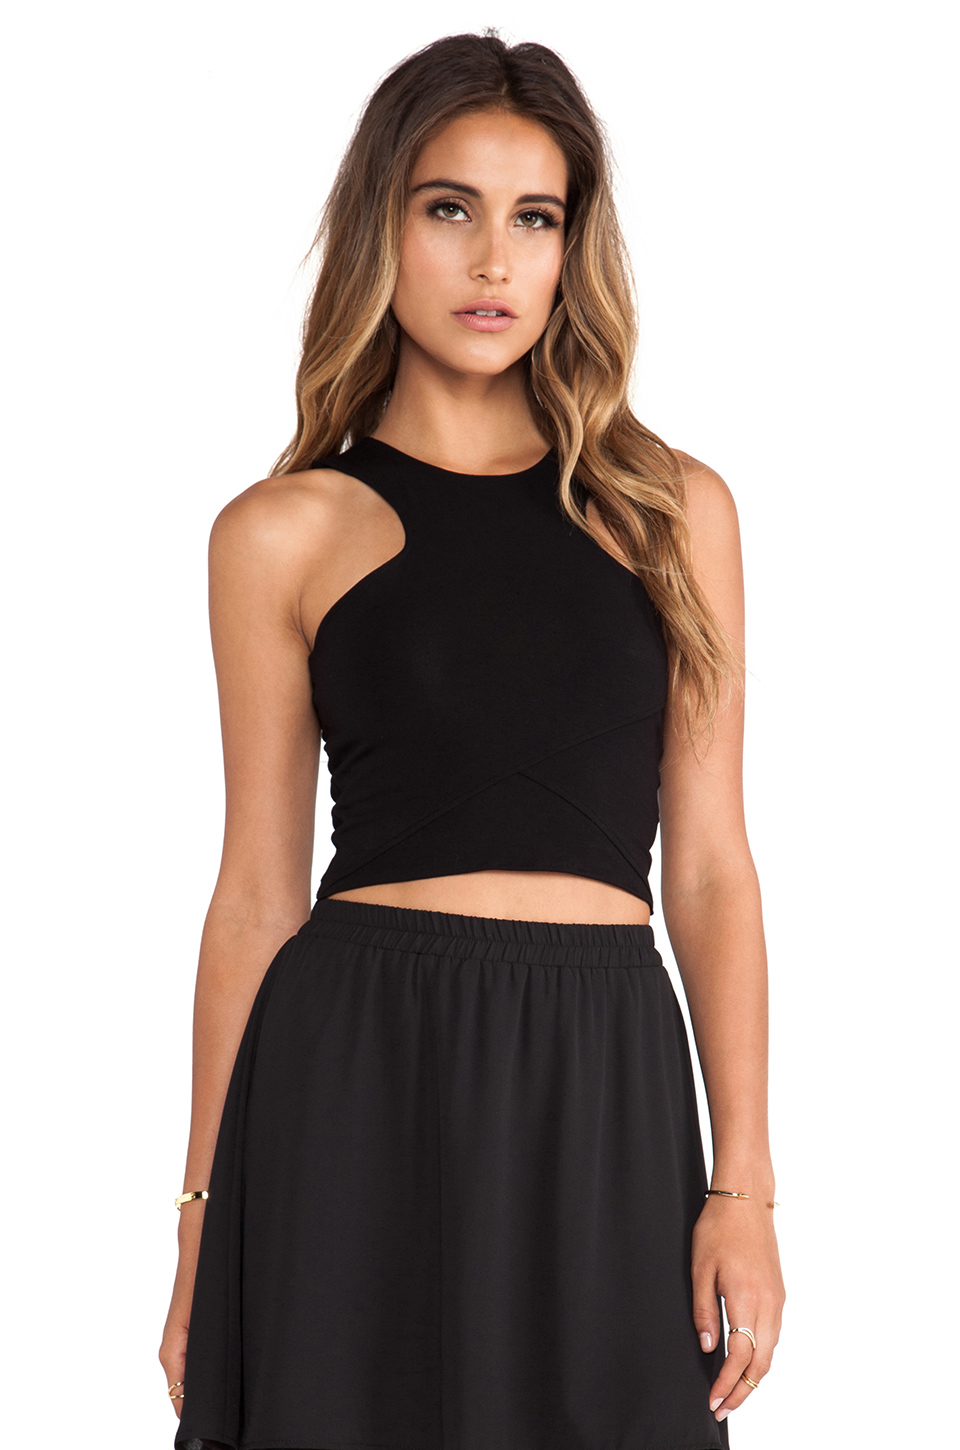 Find great deals on eBay for racerback crop tops. Shop with confidence.